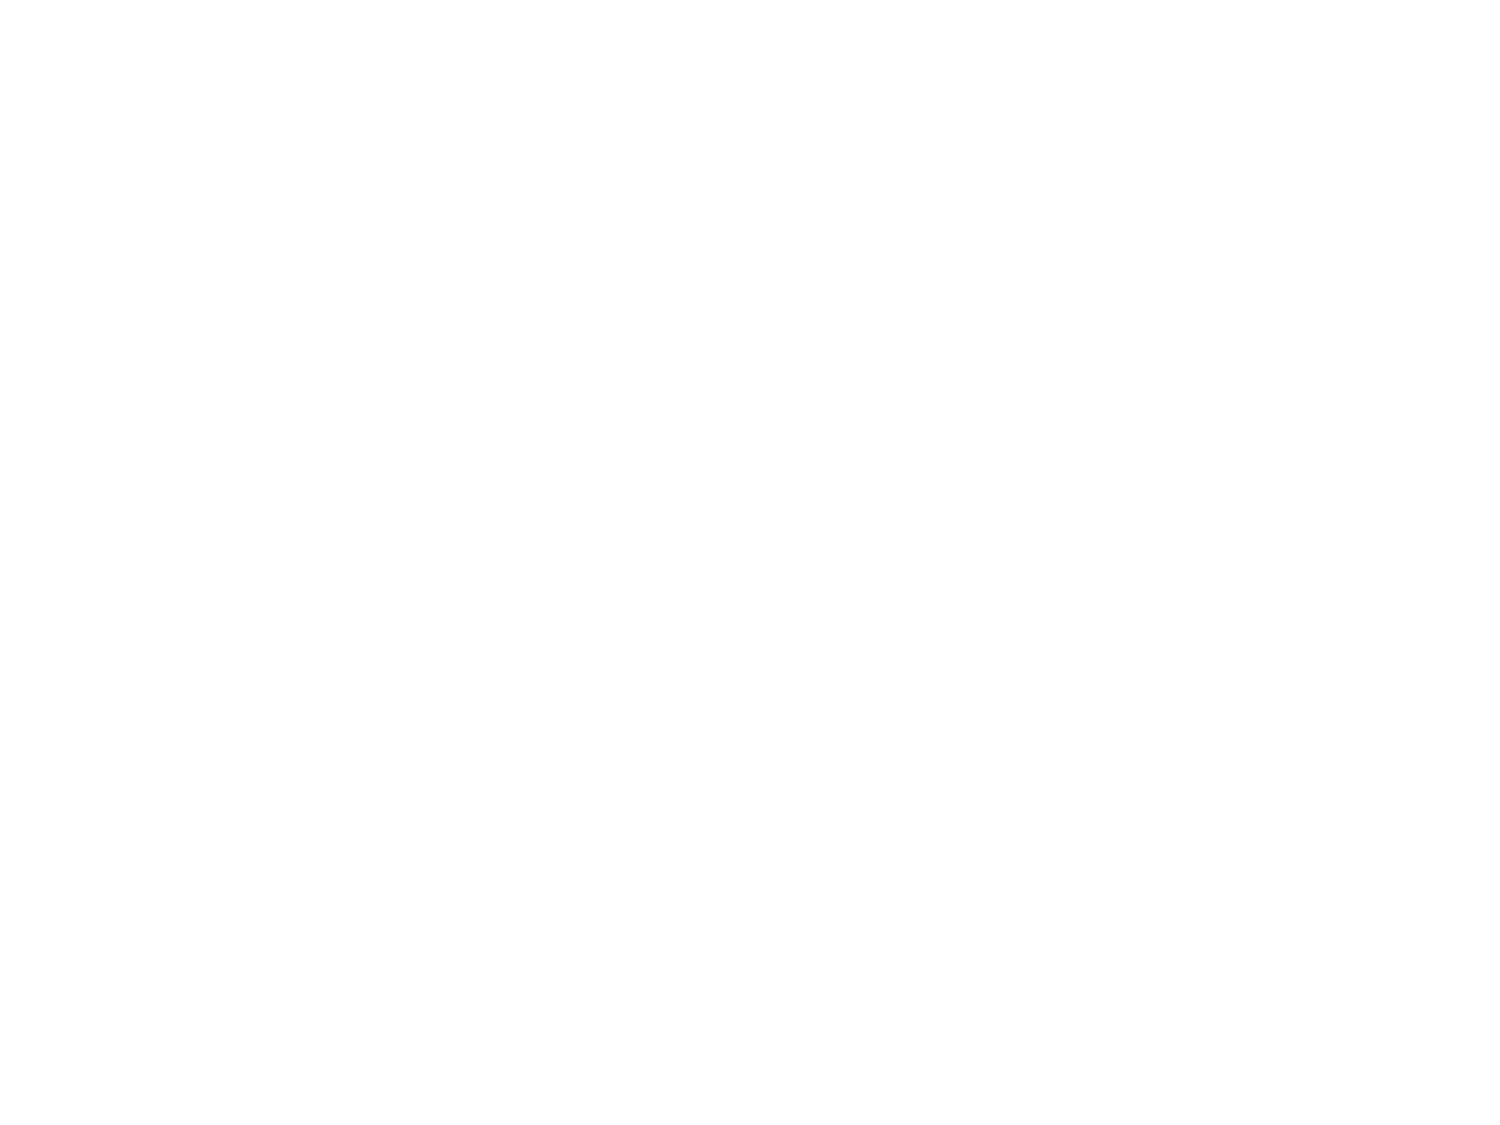 Systems Neuroscience for Psychopathology